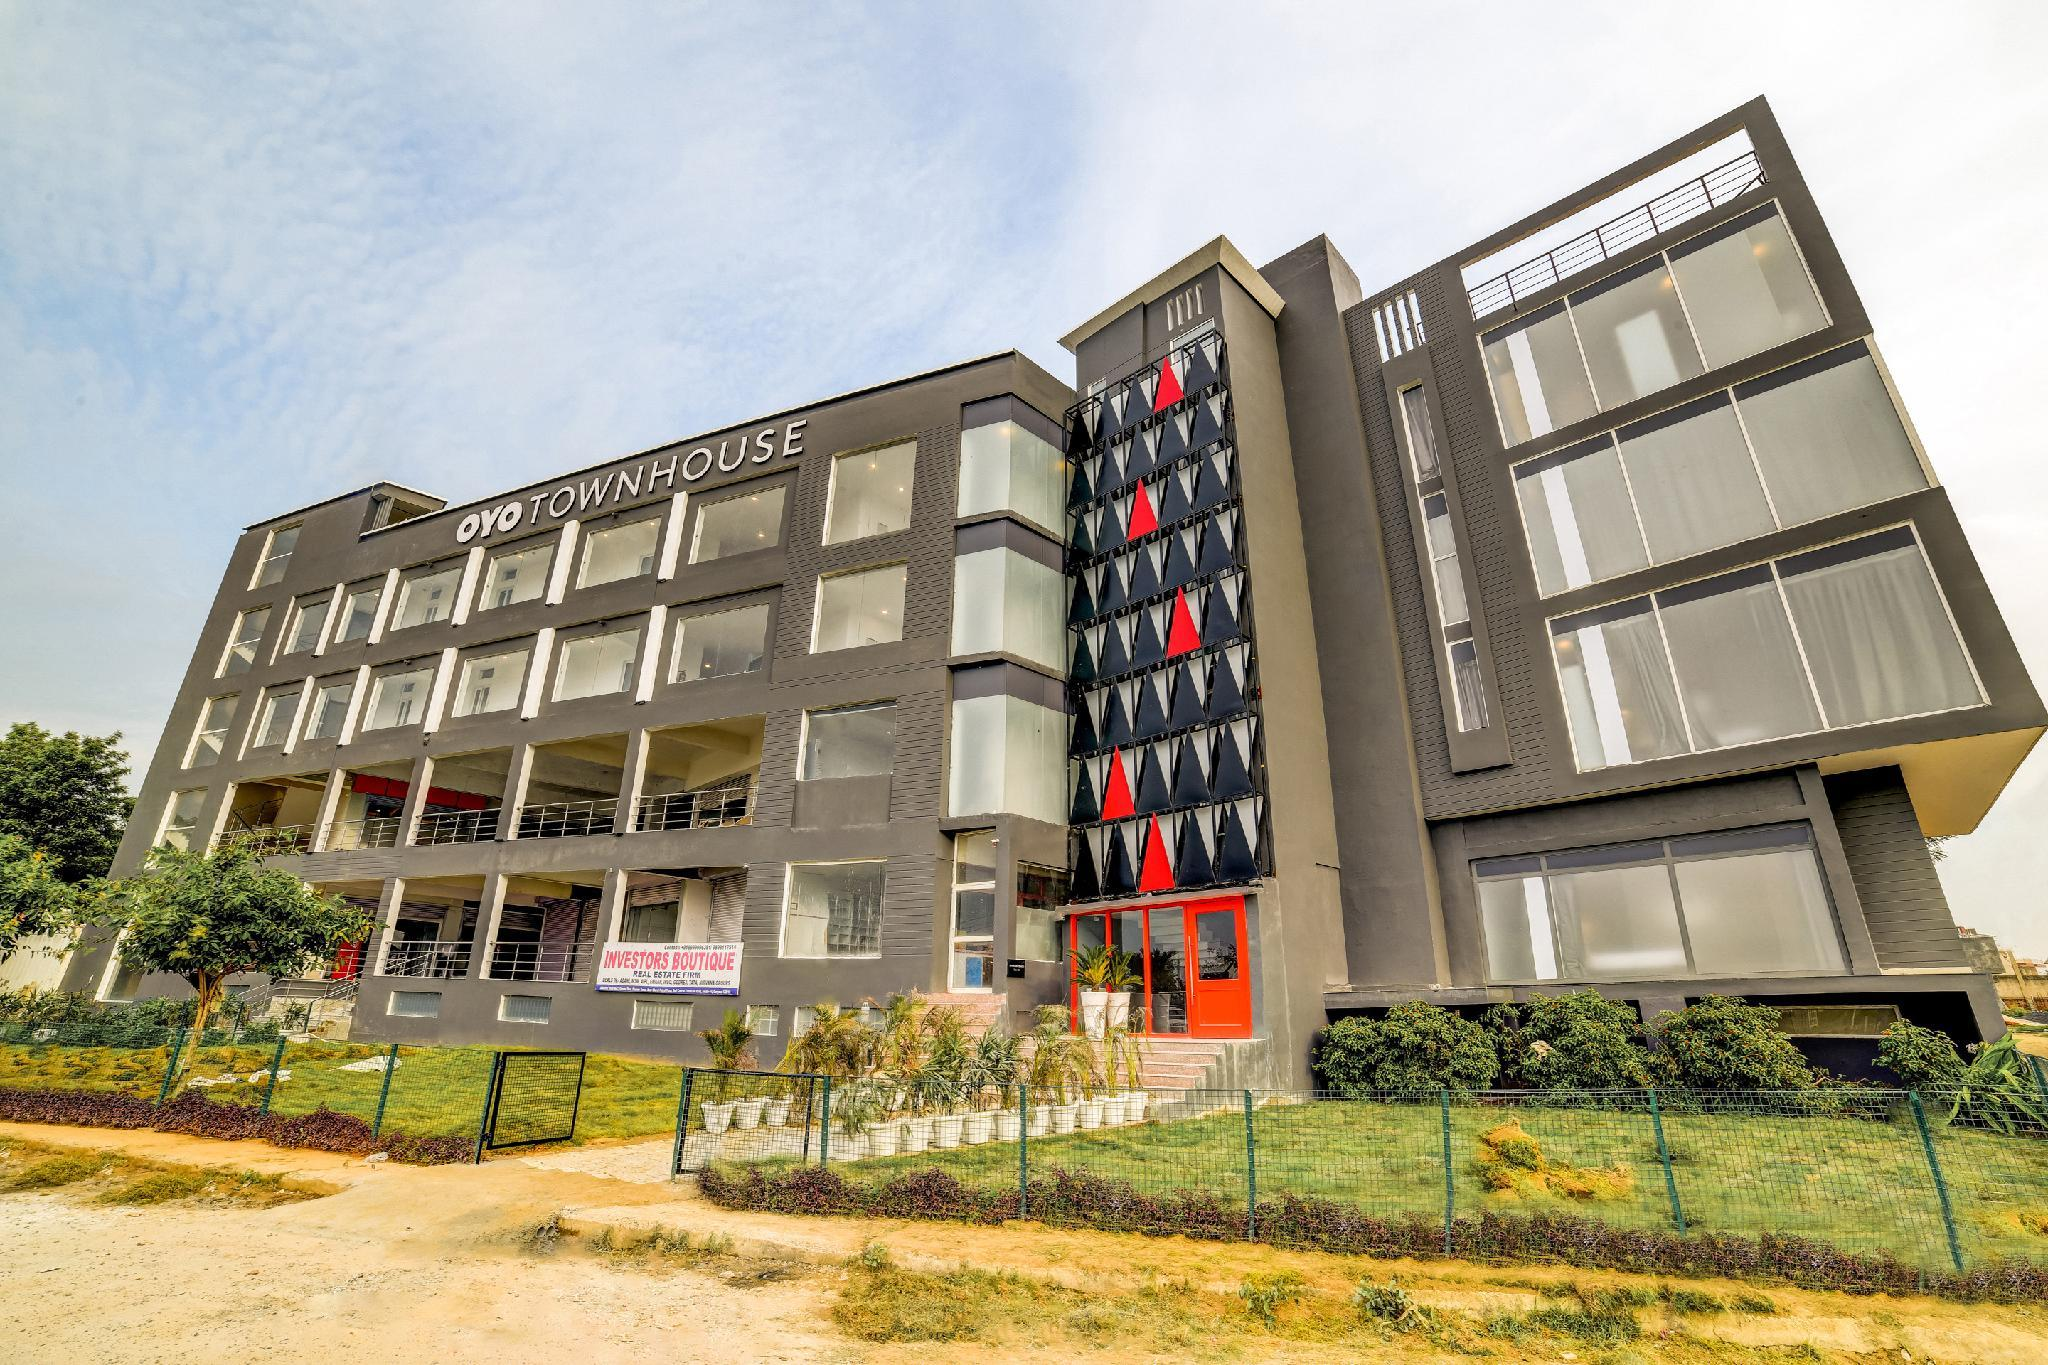 OYO Townhouse 125 Medawas